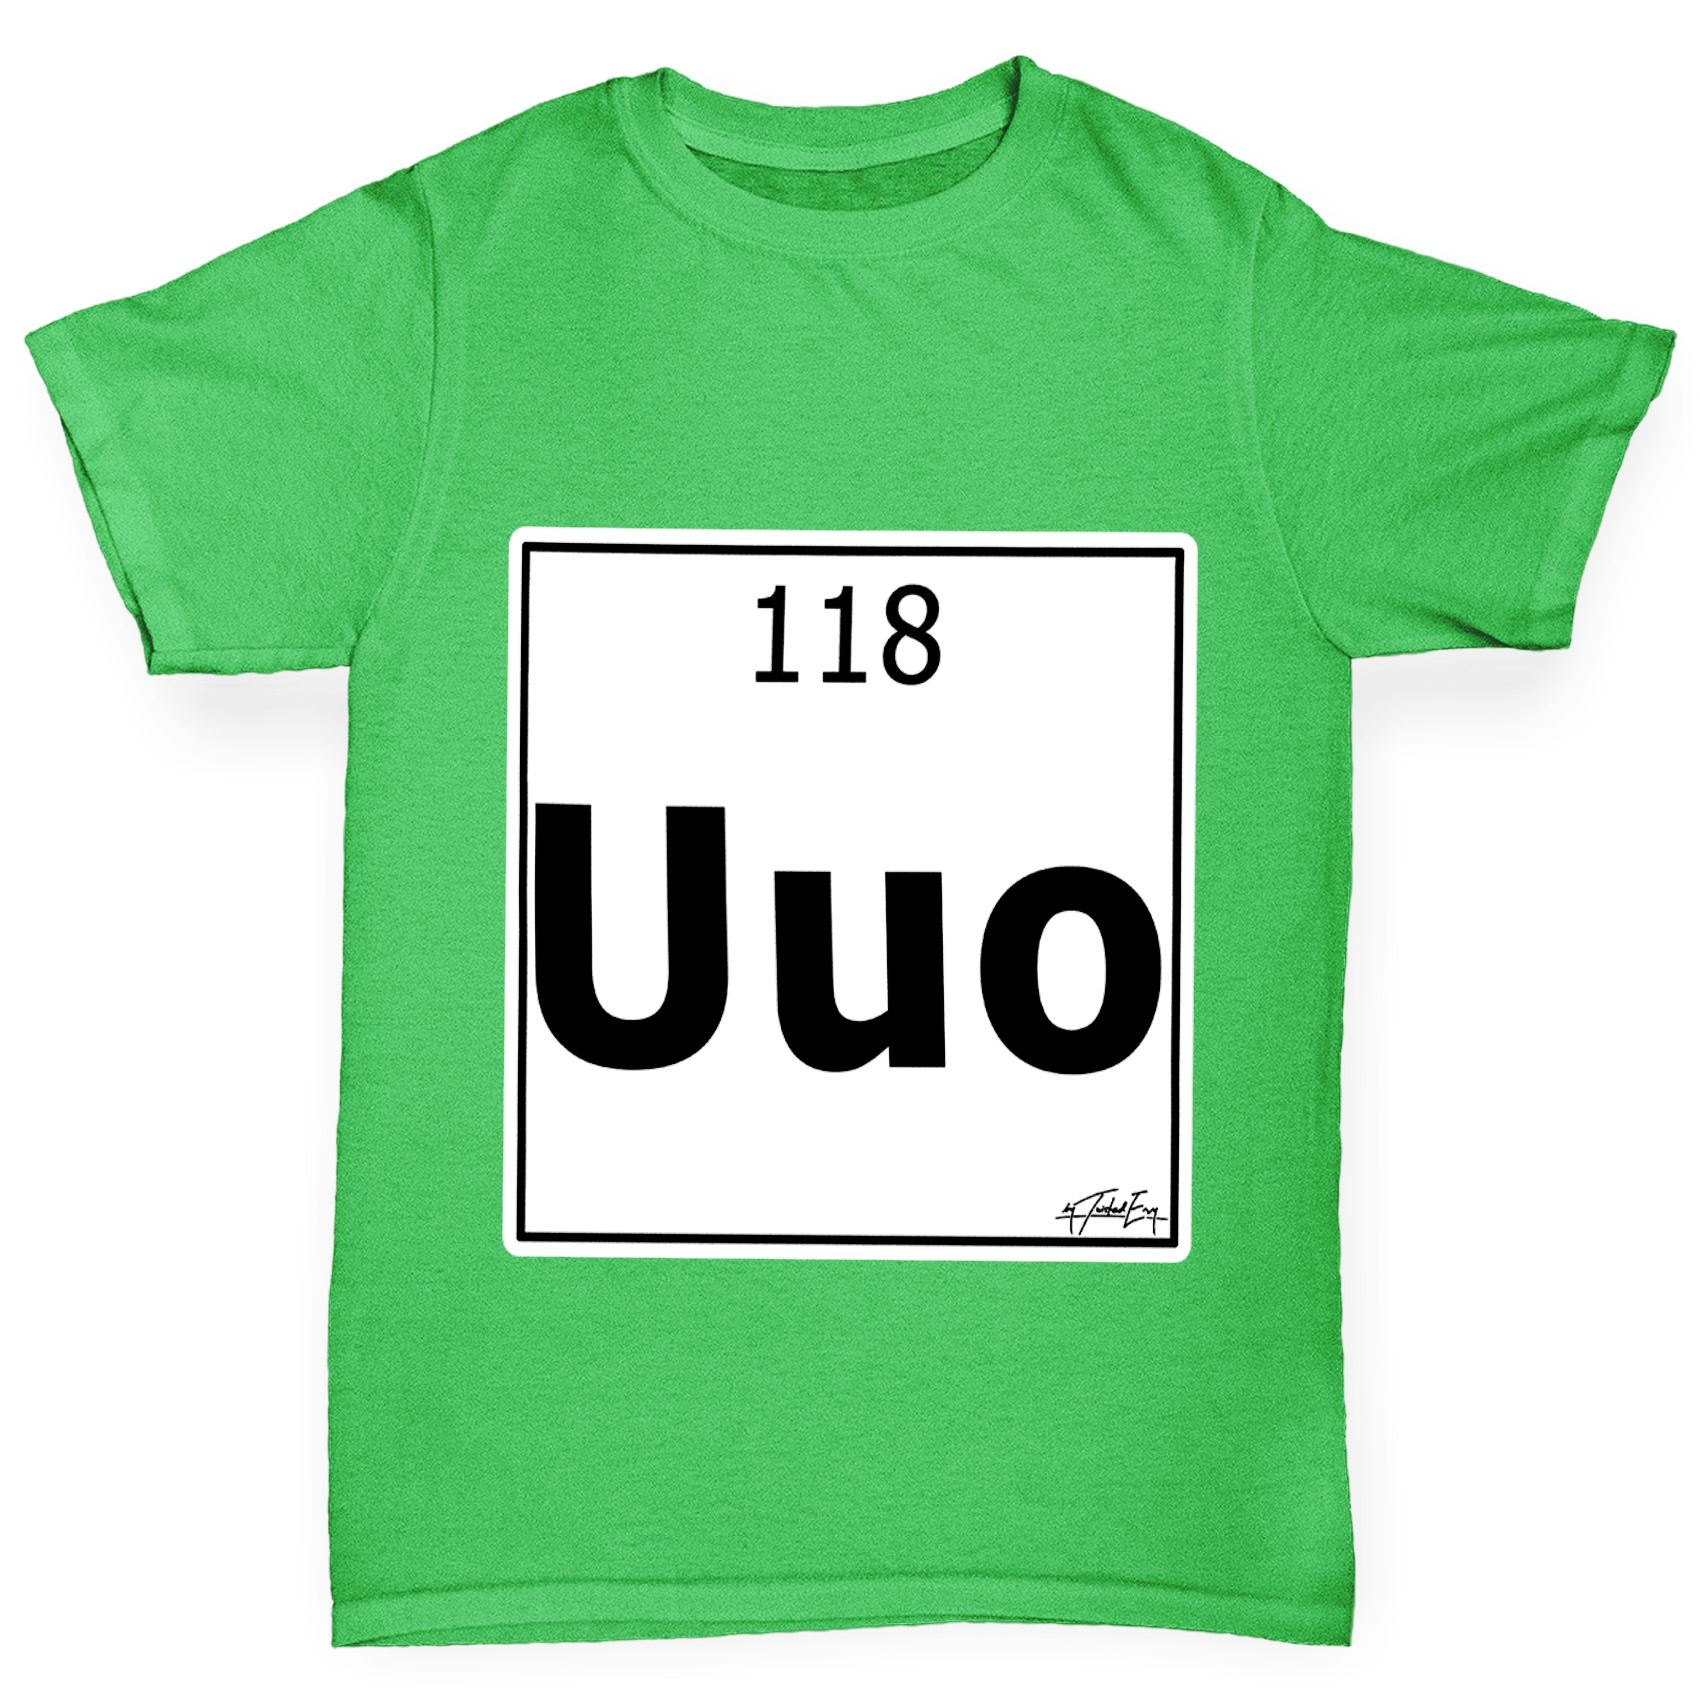 Twisted envy boys periodic table element uuo ununoctium t shirt twisted envy boy 039 s periodic table element gamestrikefo Gallery